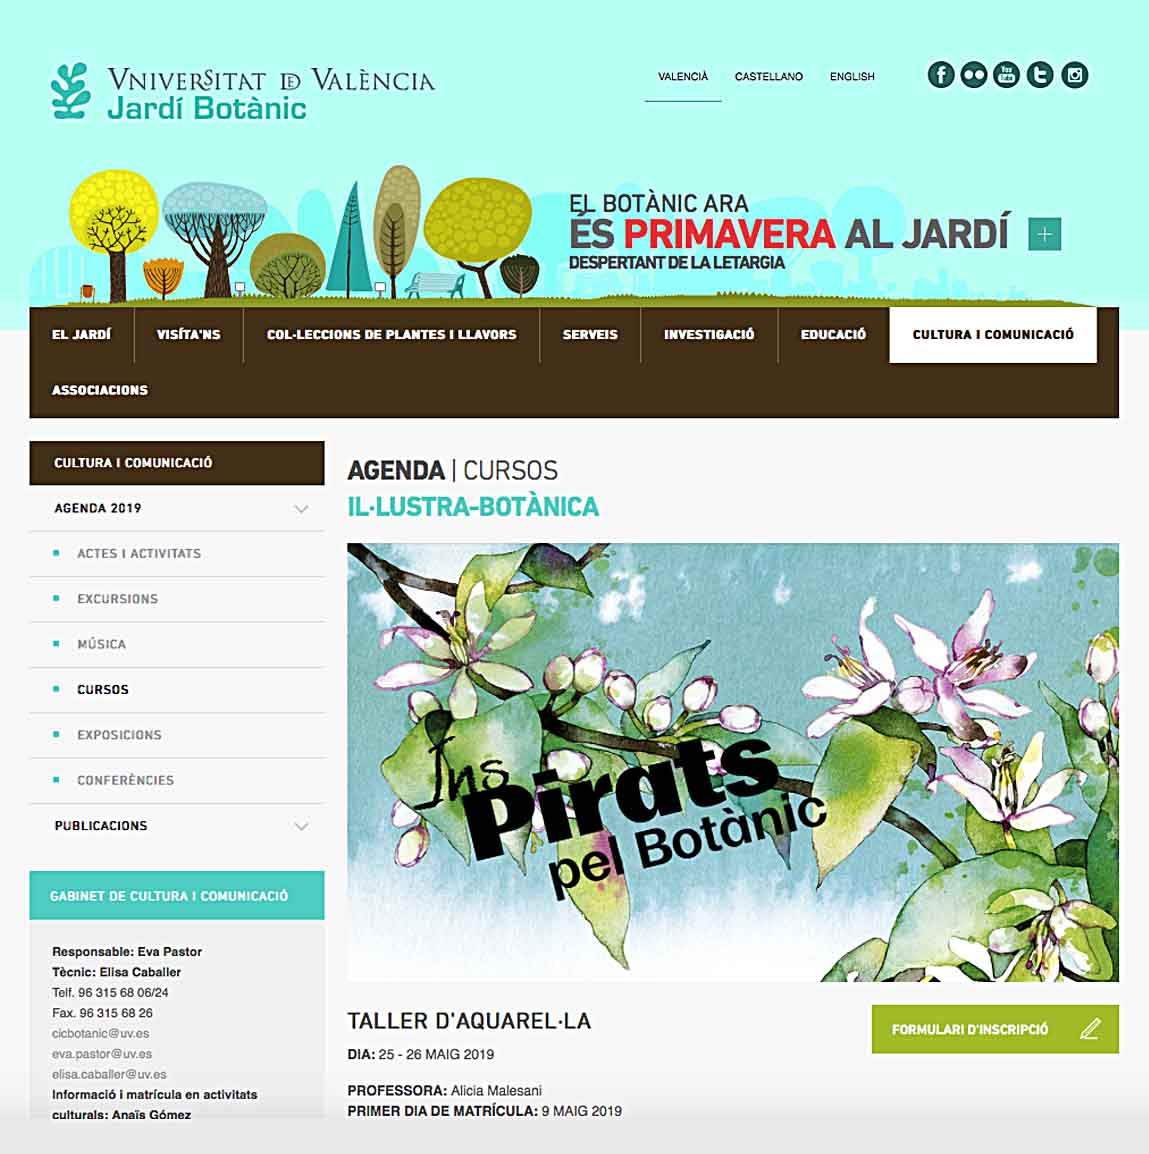 Watercolor Workshop - Botanical Garden Valencia - May 25 / 26 - 2019  Taller de Acuarela en el Jardín Botánico de la Universidad de Valencia - Mayo 25 / 26 - 2019